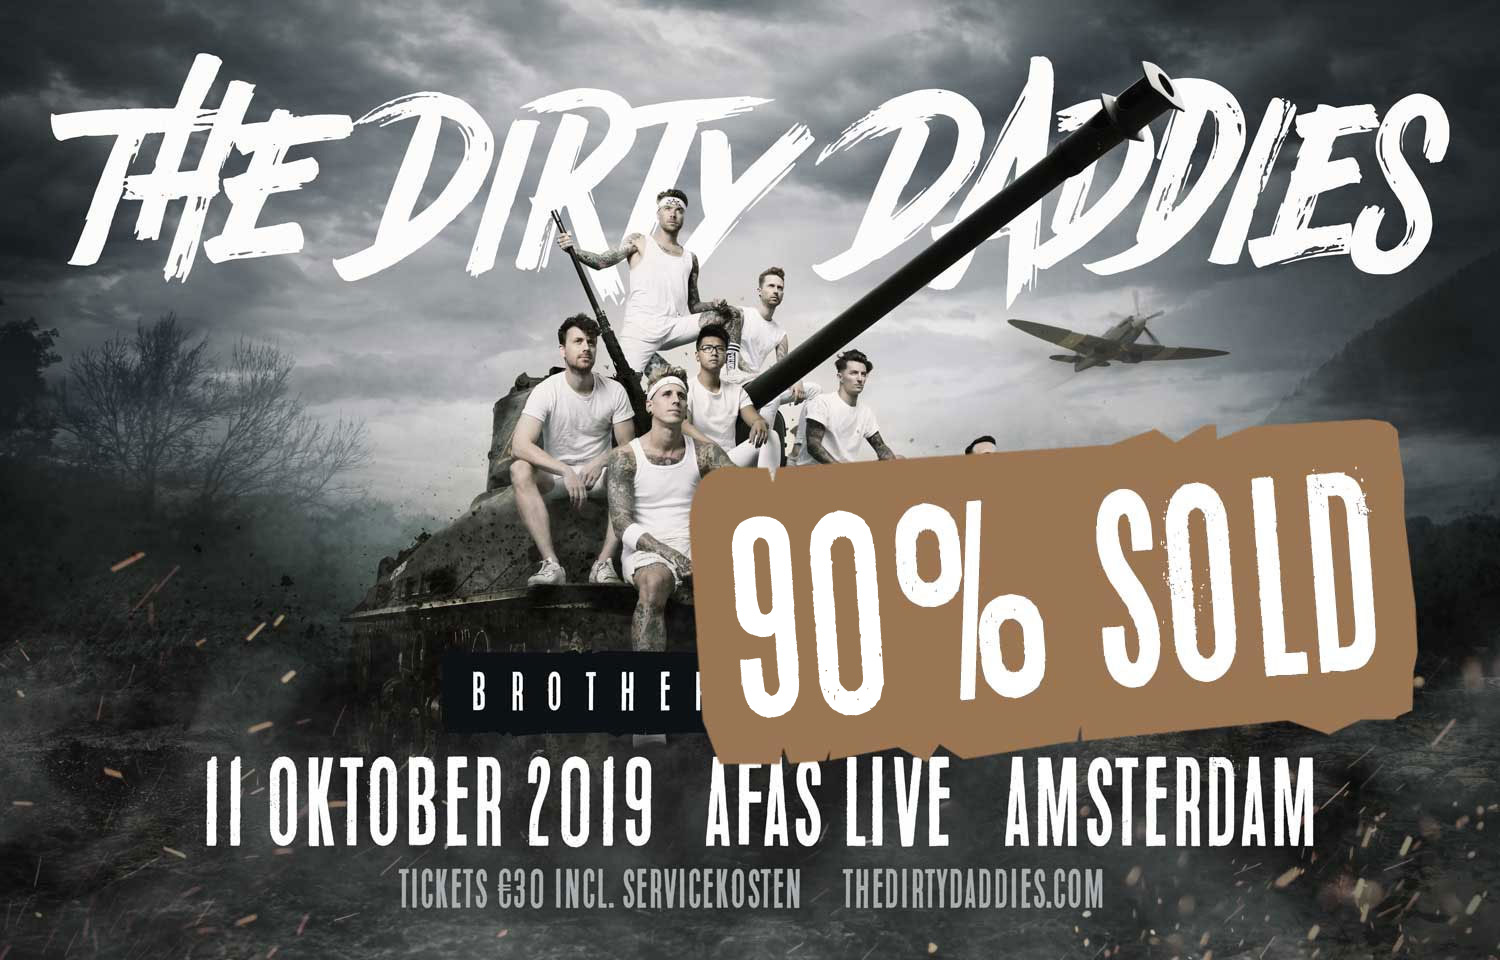 The Dirty Daddies 11 oktober 2019 terug in de AFAS Live!